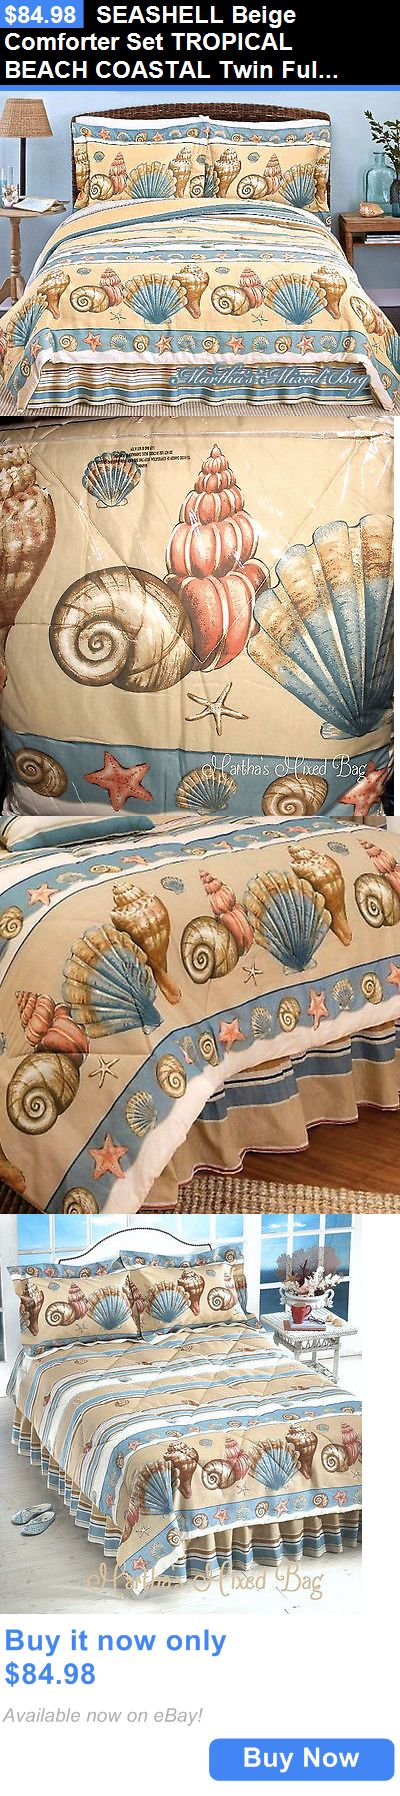 Kids Bedding: Seashell Beige Comforter Set Tropical Beach Coastal Twin Full Queen King Sizes BUY IT NOW ONLY: $84.98